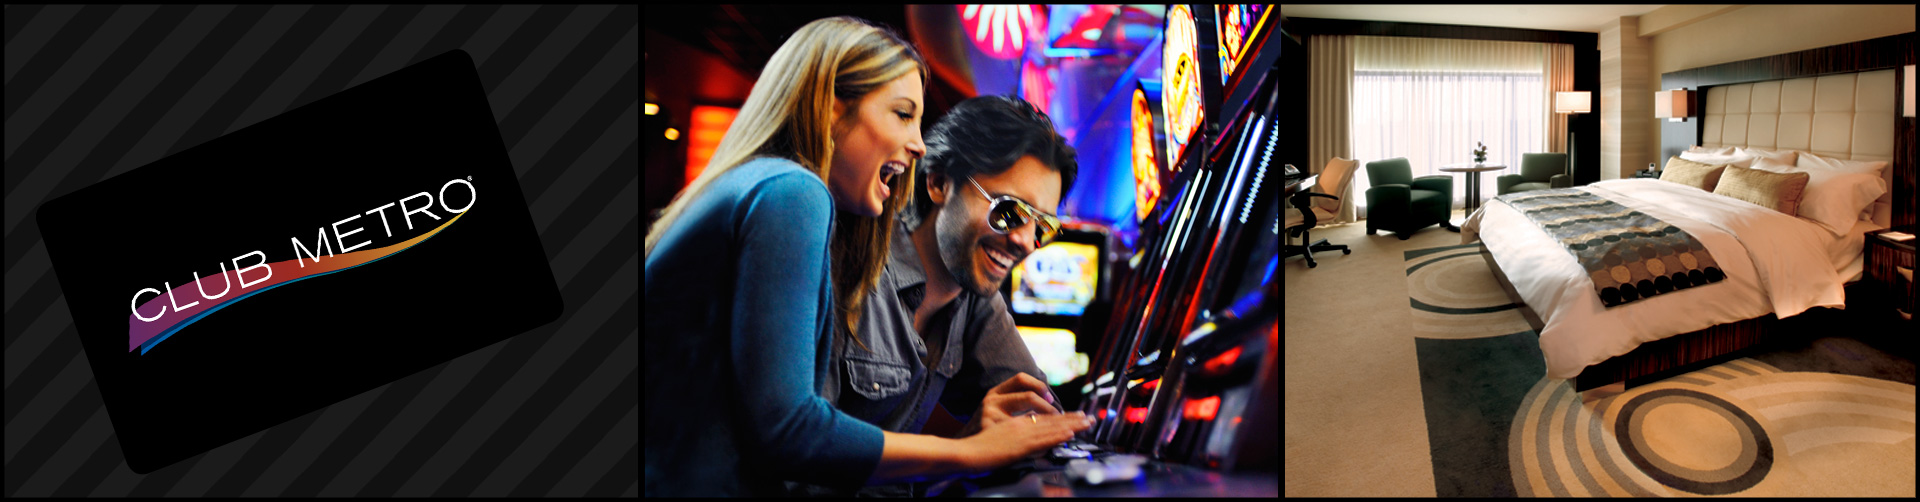 Motor city casino seafood buffet images frompo for Motor city casino com stay